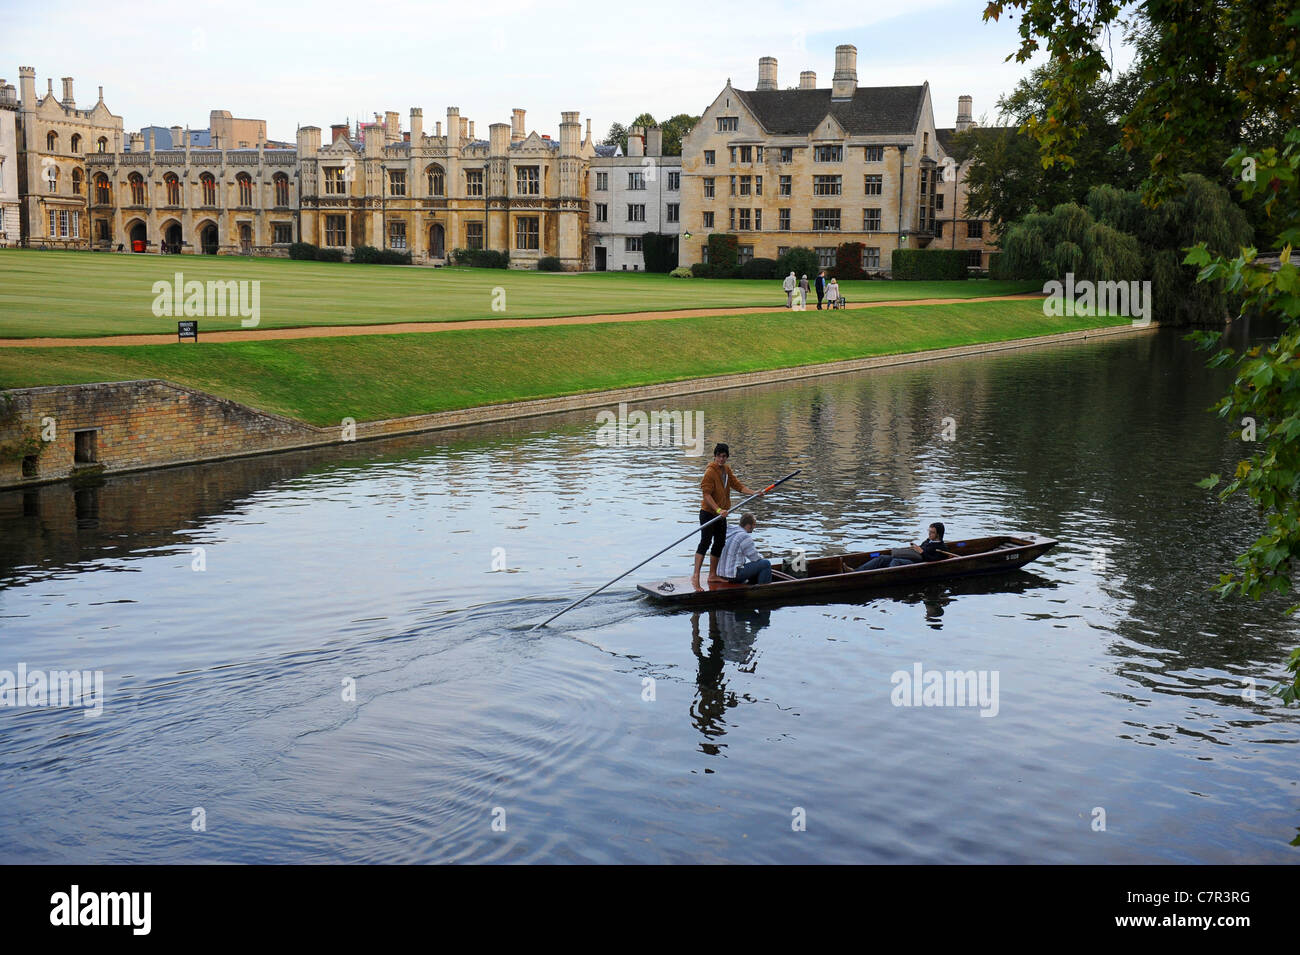 Punting on River Cam early evening Cambridge England Uk - Stock Image